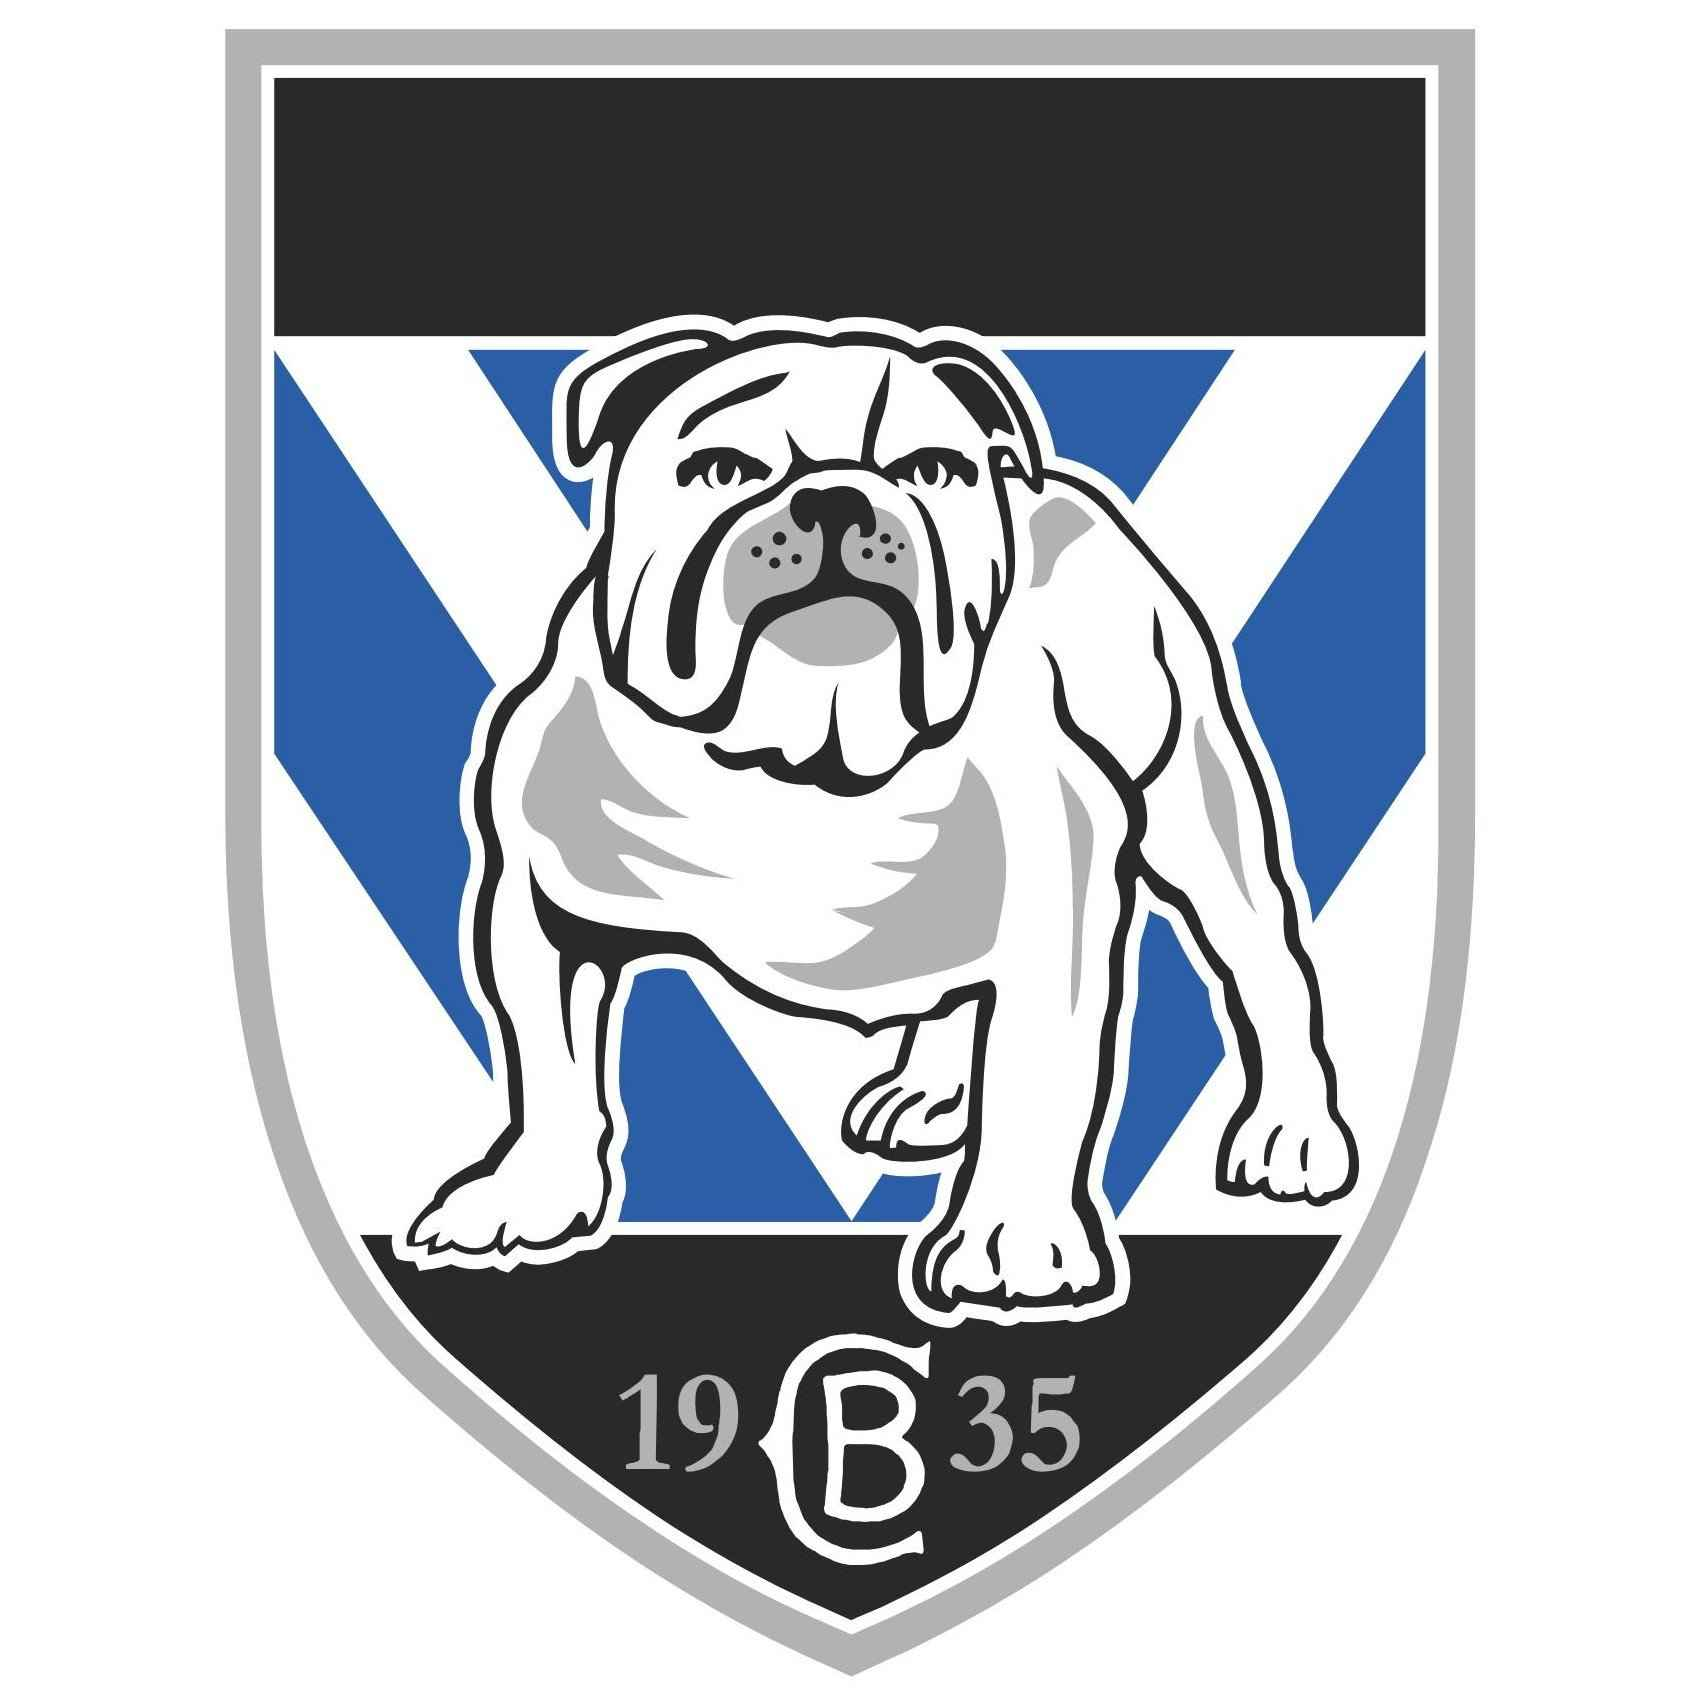 Canterbury-Bankstown Bulldogs Logo Vector EPS Free Download, Logo, Icons, Brand Emblems